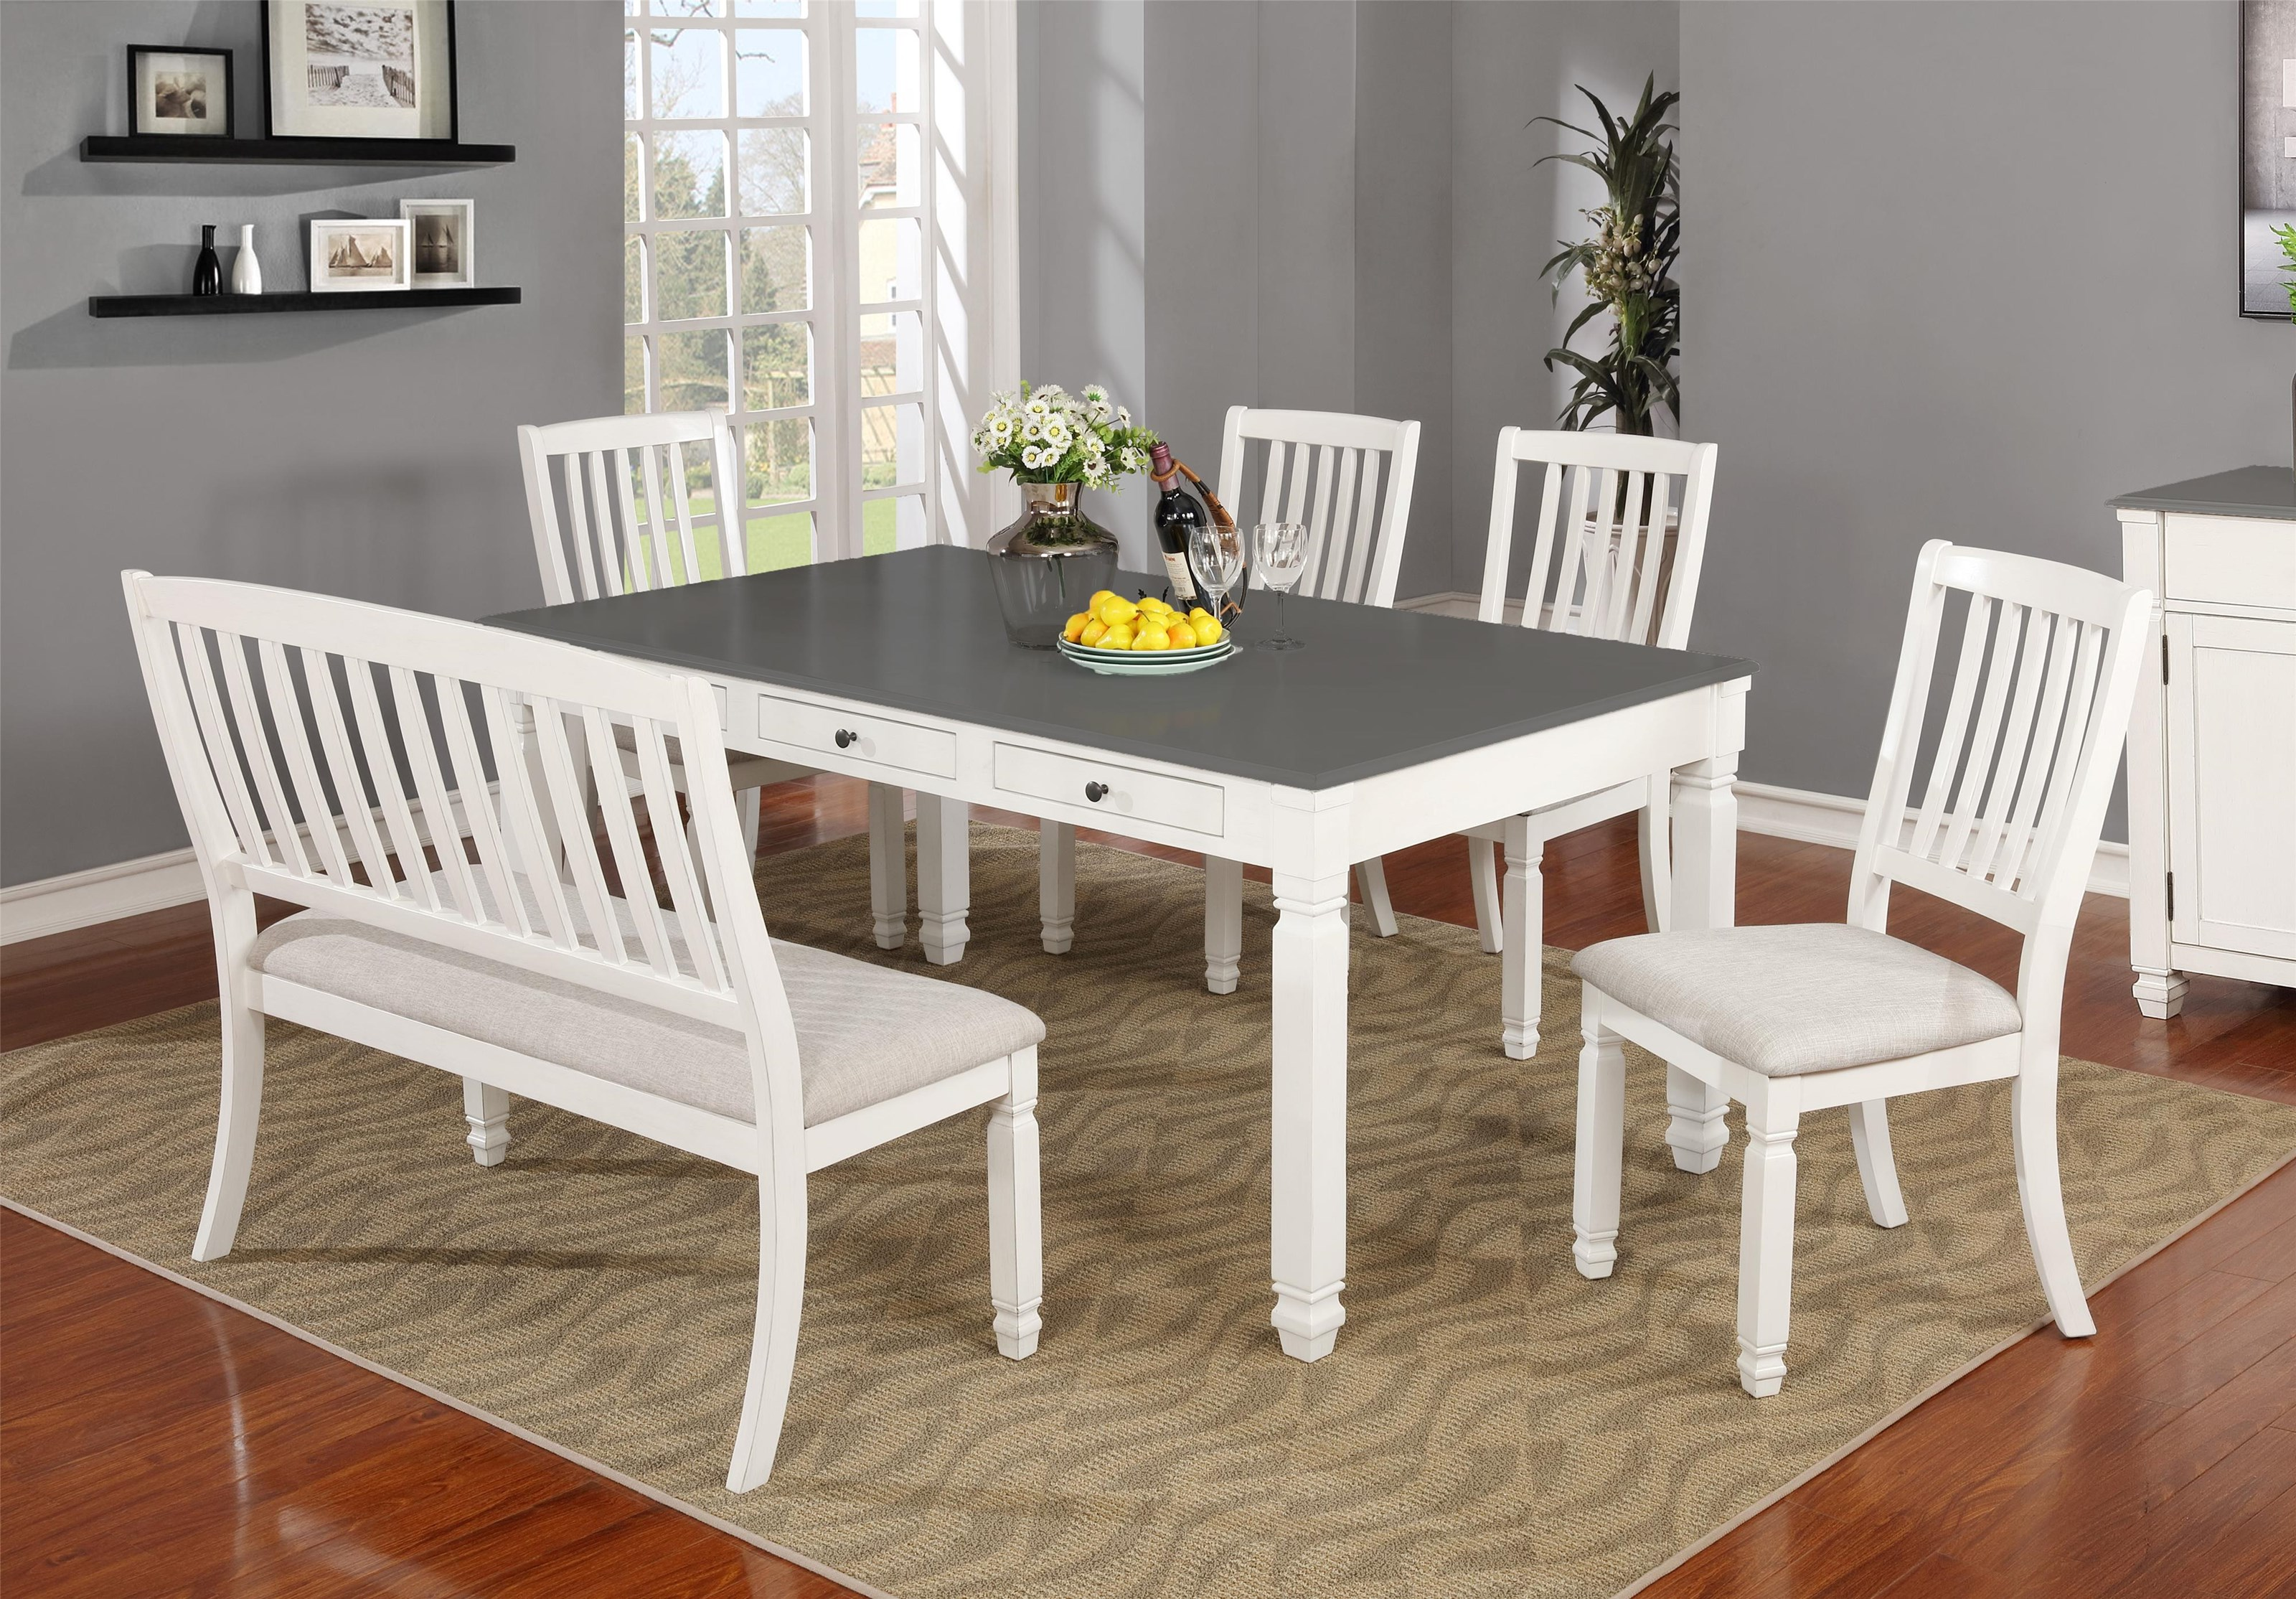 C1735 Table x 4 Chairs by Lifestyle at Furniture Fair - North Carolina